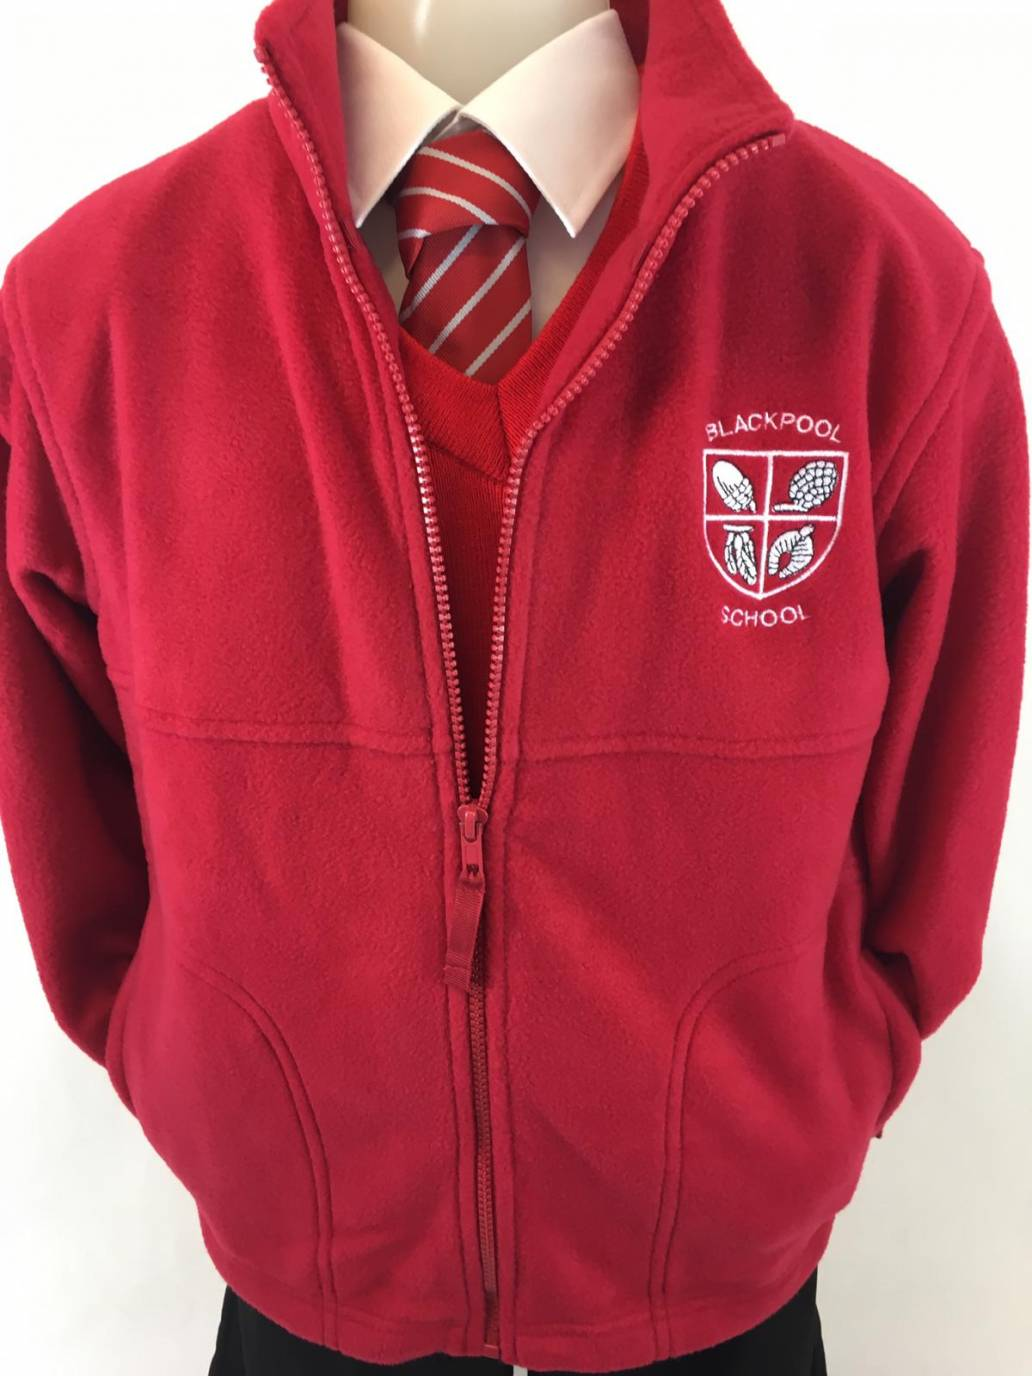 Blackpool Primary School Fleece